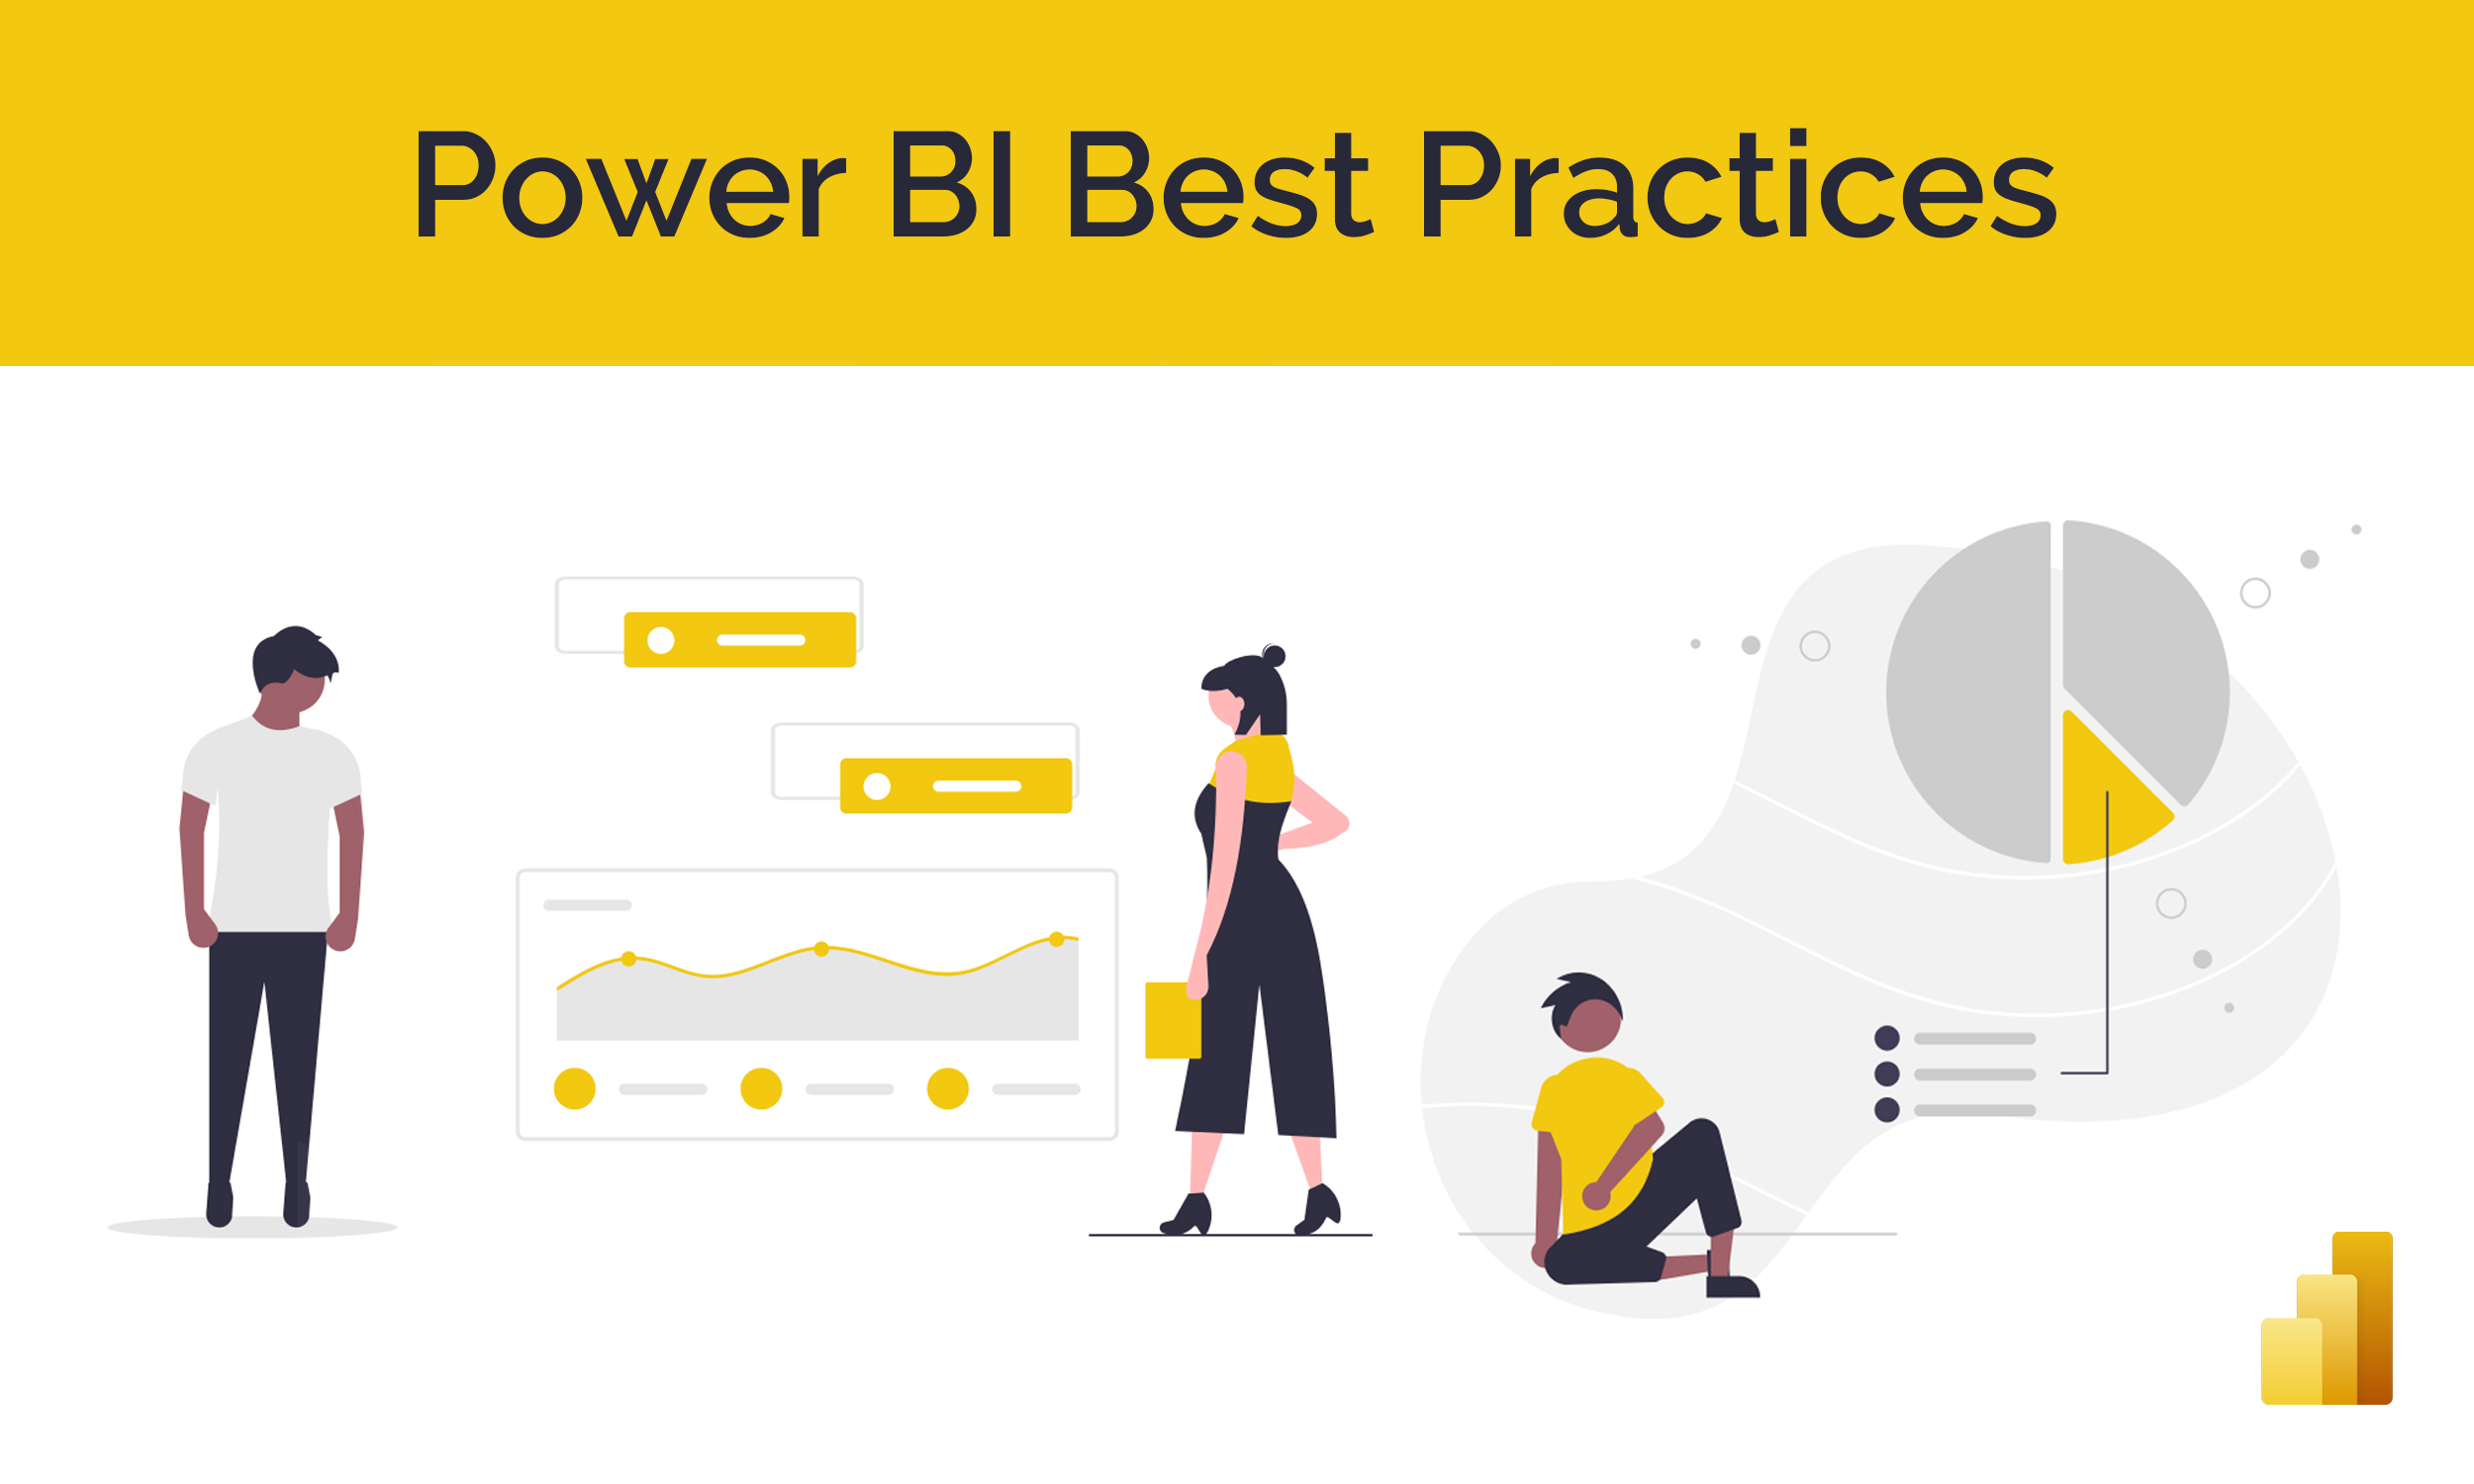 Cover image for and link to the Power BI Best Practice Guide